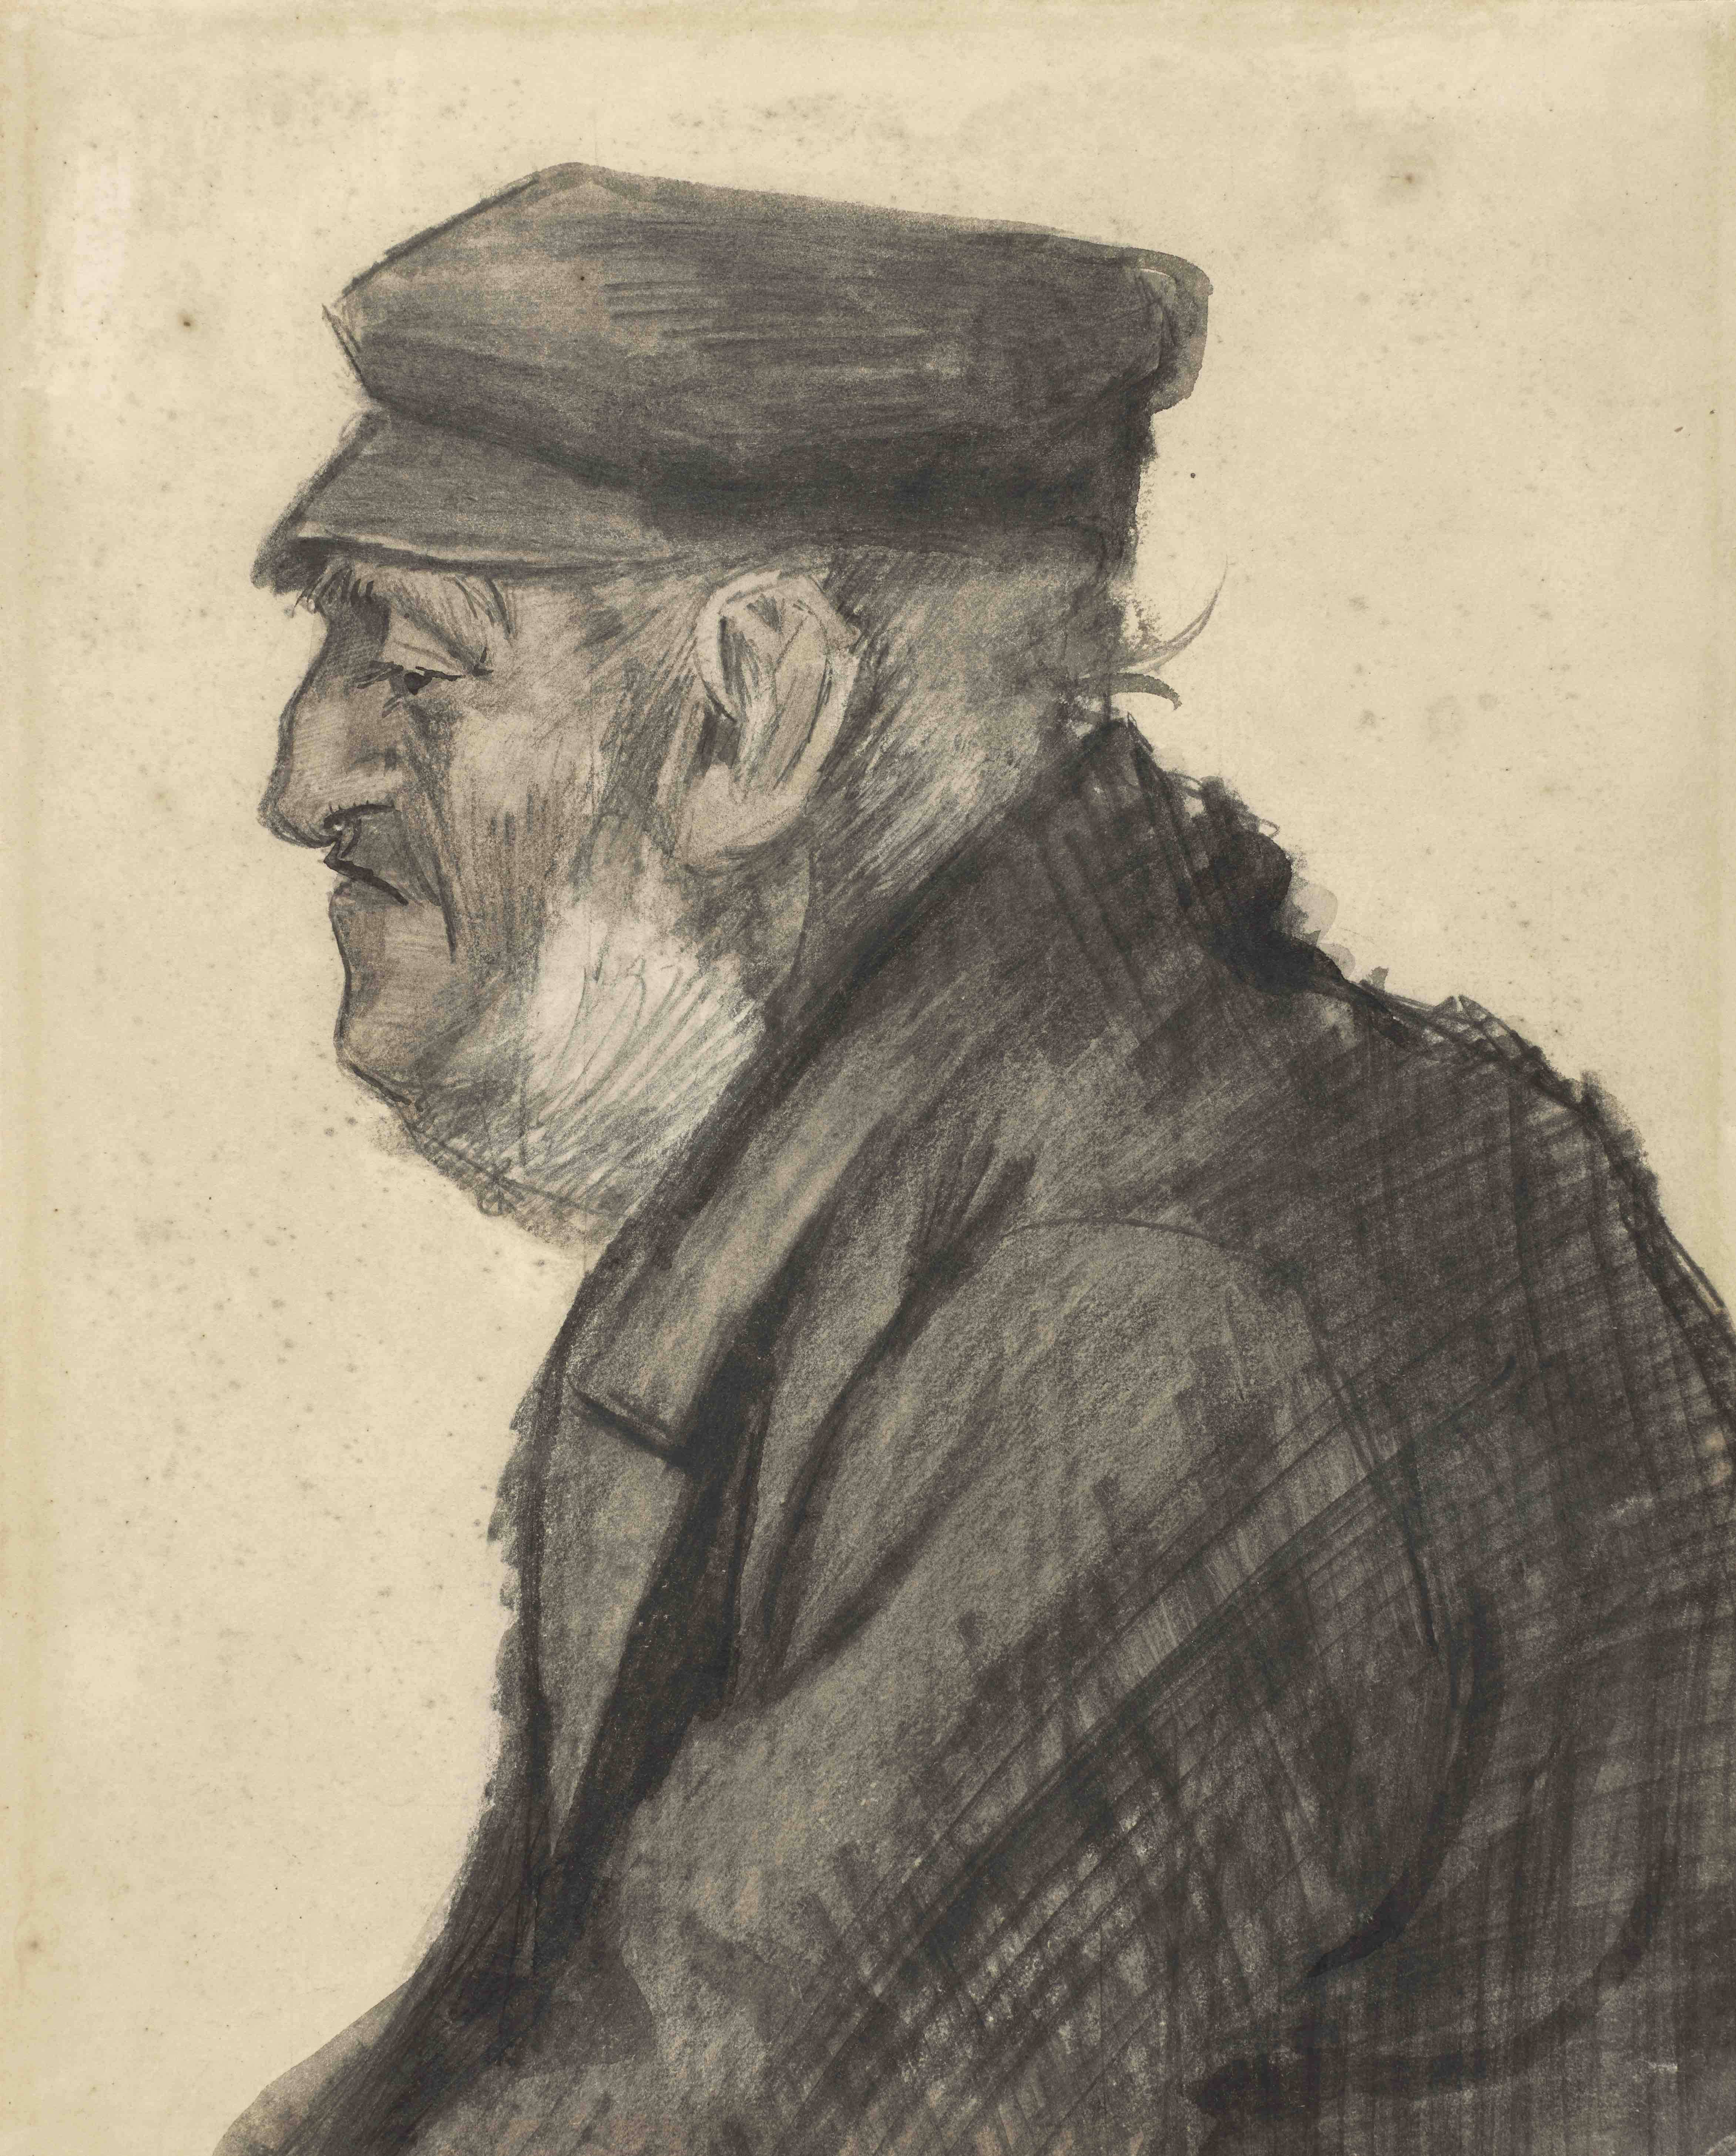 A portrait of a homeless man in profile by Vincent van Gogh.